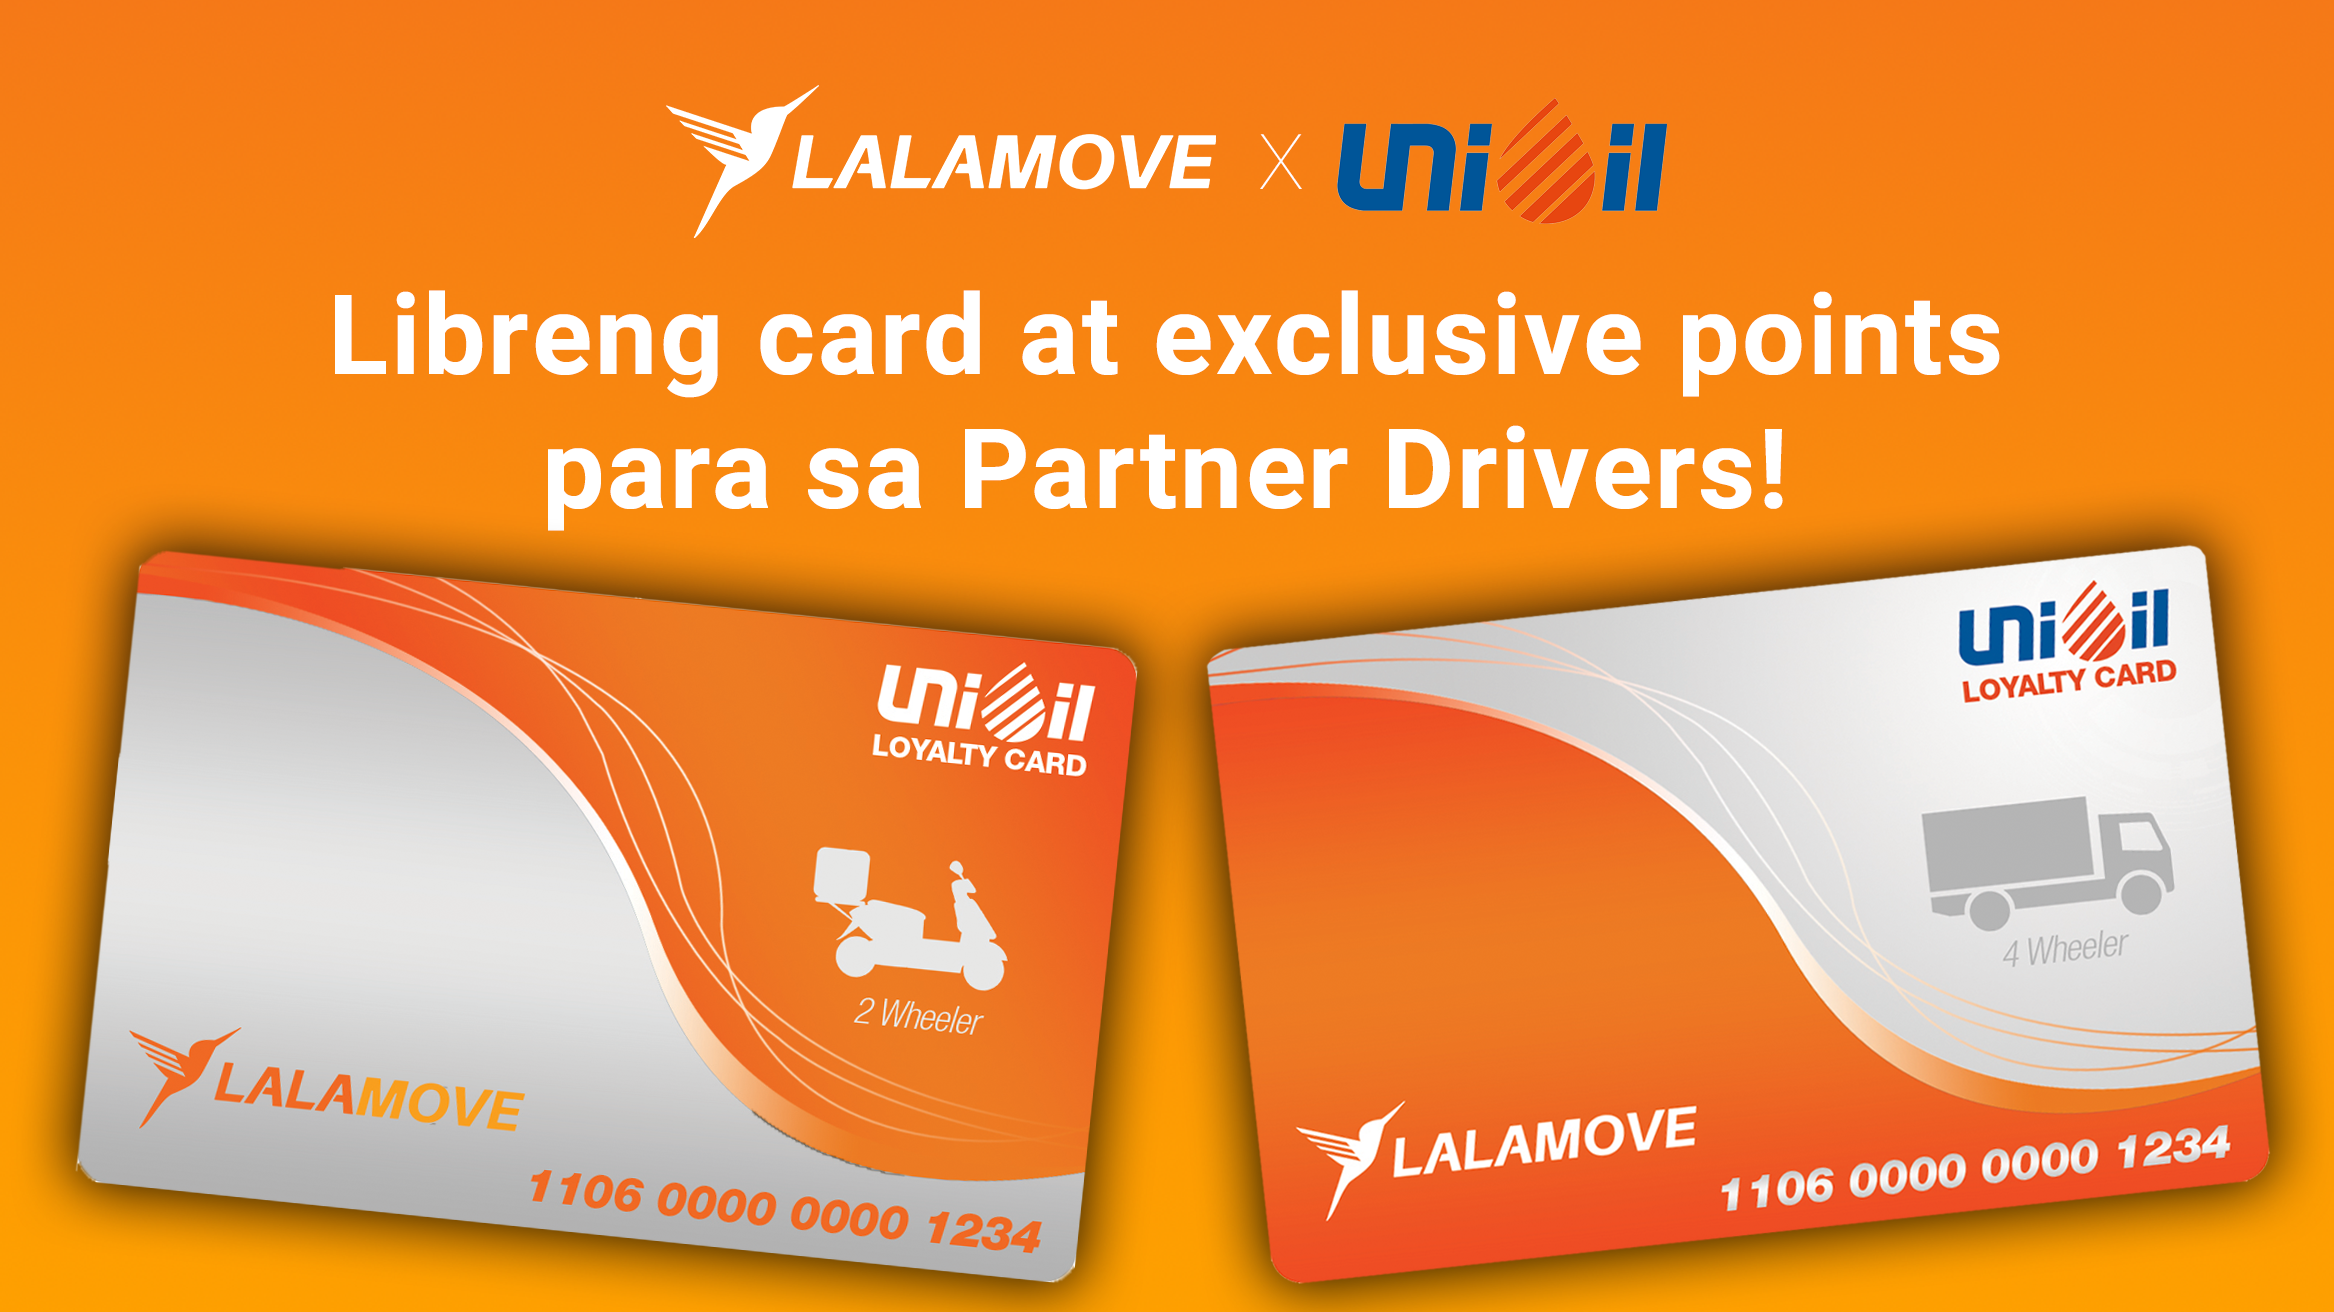 PANALOMOVE: Libreng Loyalty Card at exclusive bonus points para sa mga partner driver mula sa Unioil